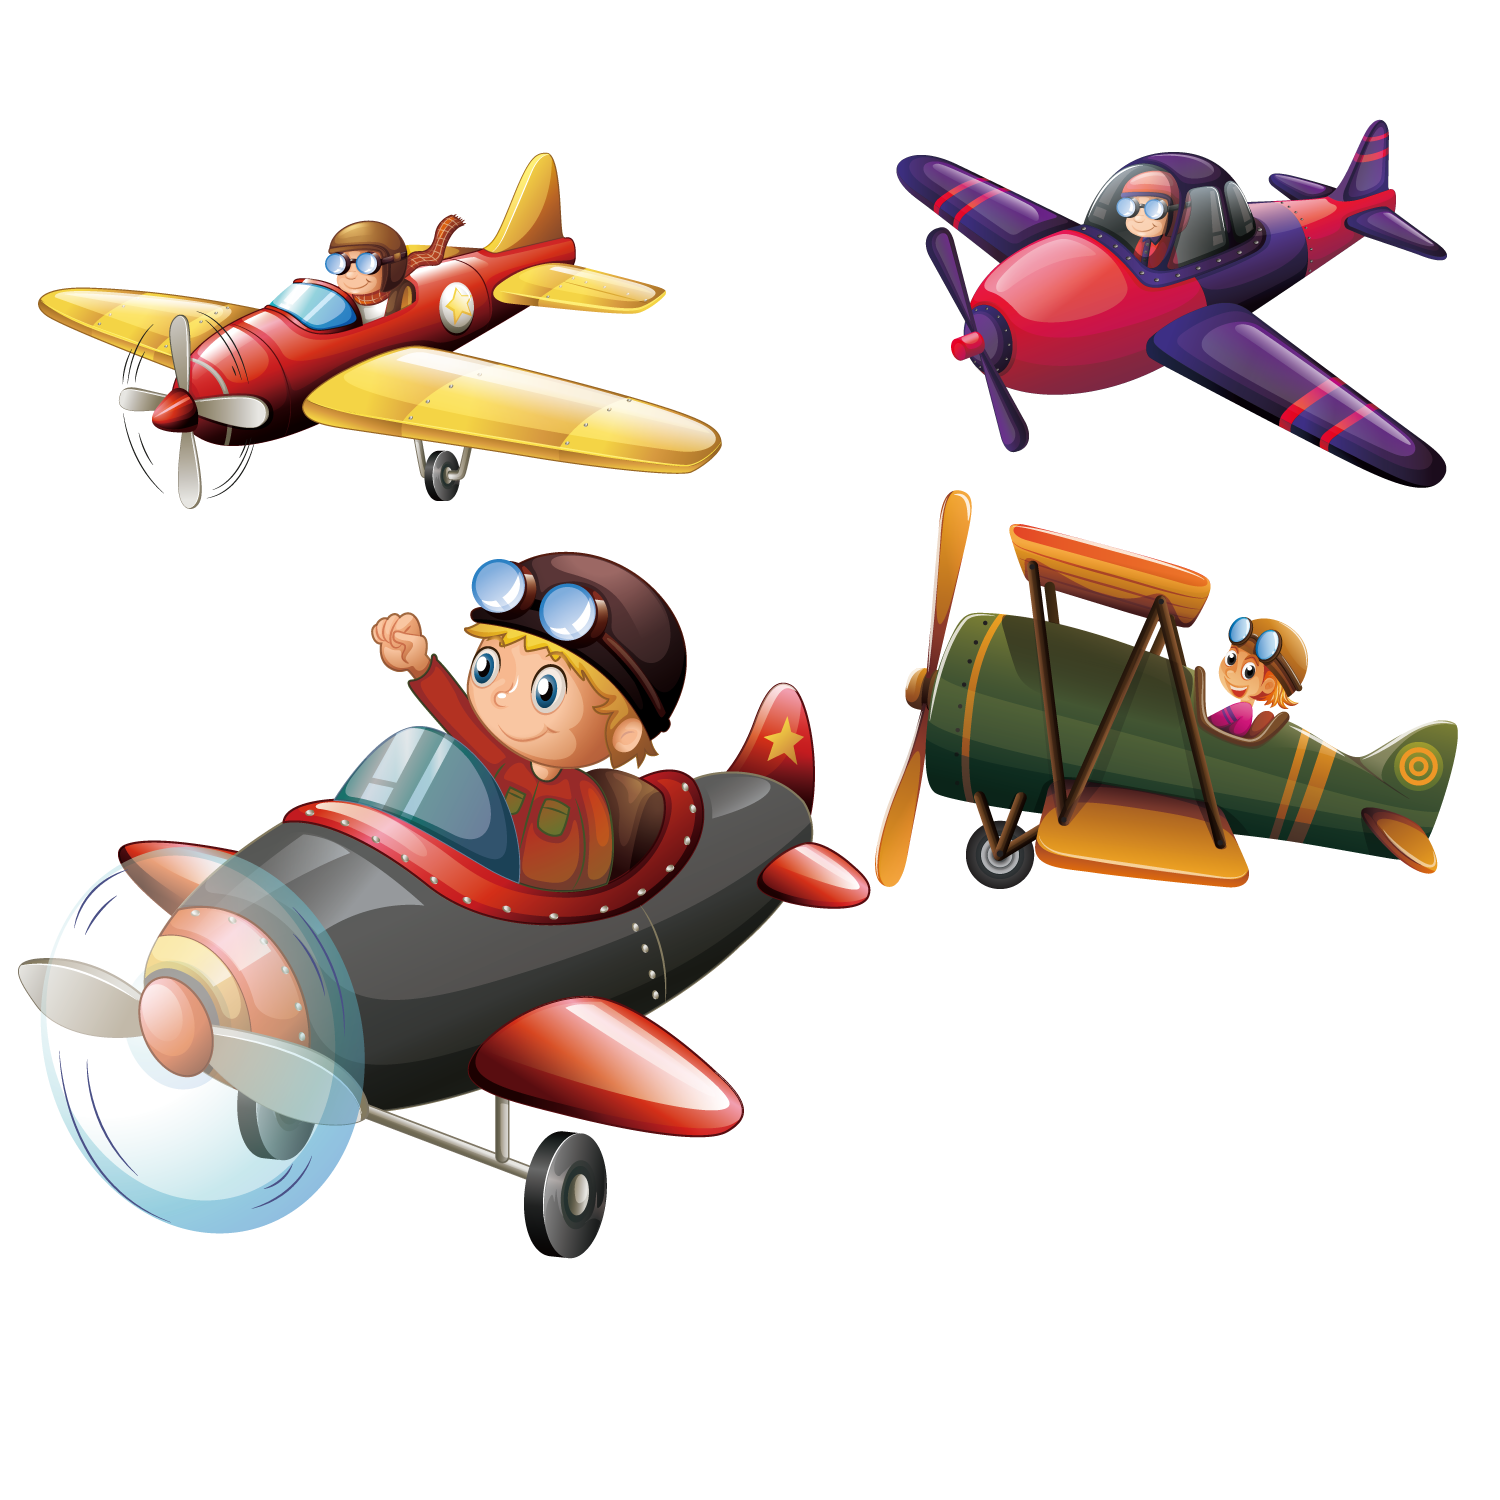 Pilot clipart helicopter pilot. Airplane aircraft flight illustration